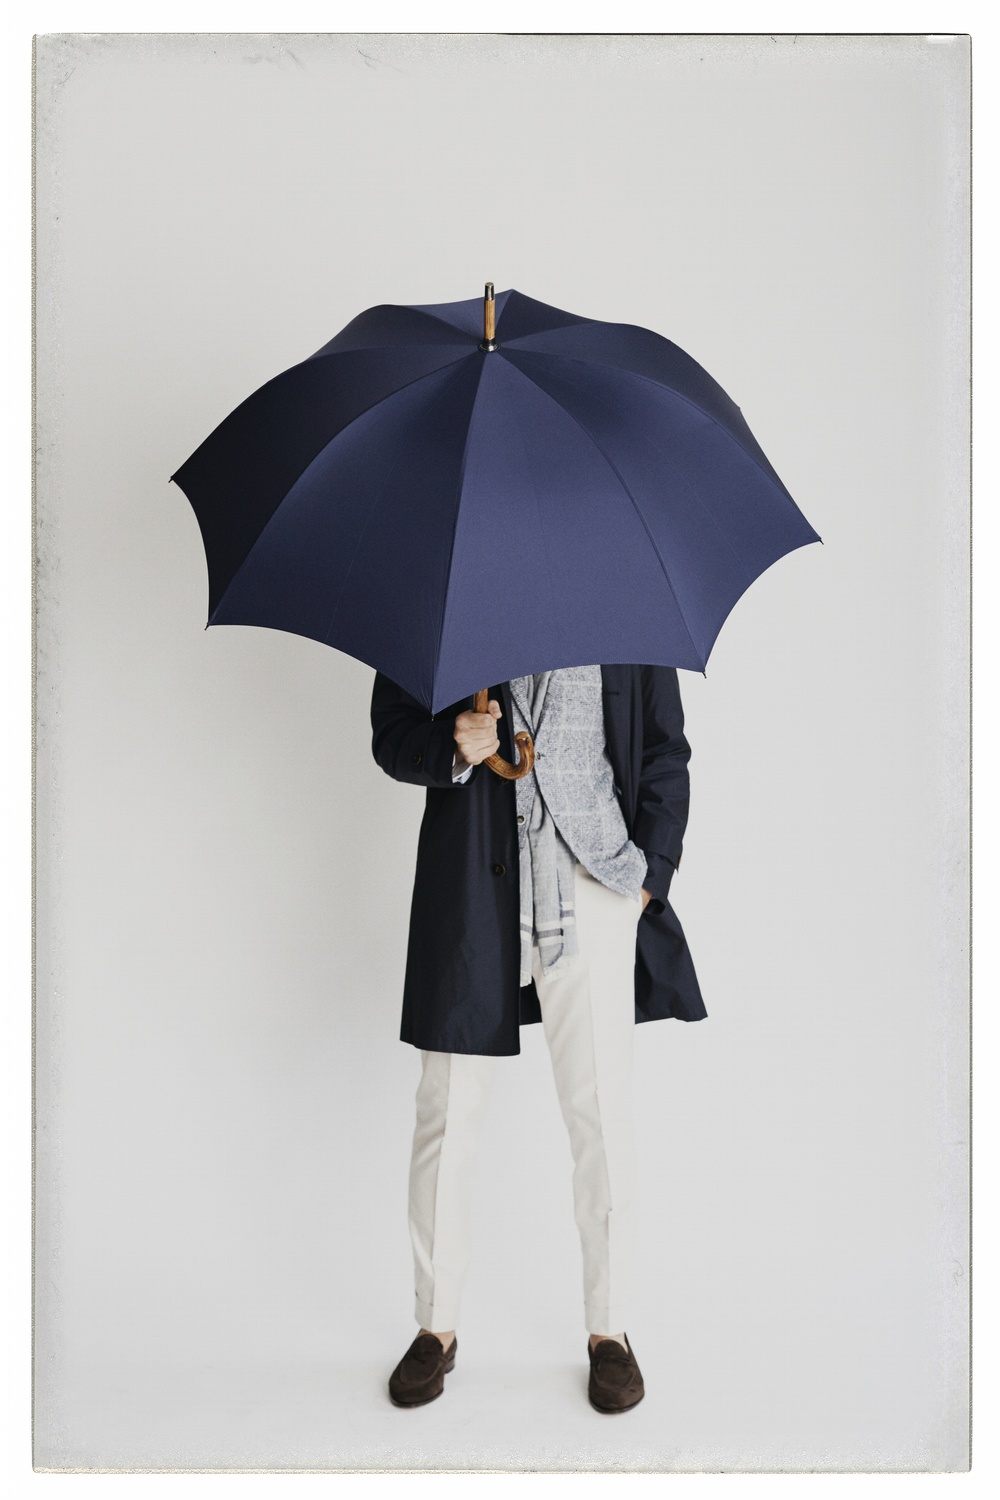 ring jacket-umbrella-tailored-menswear